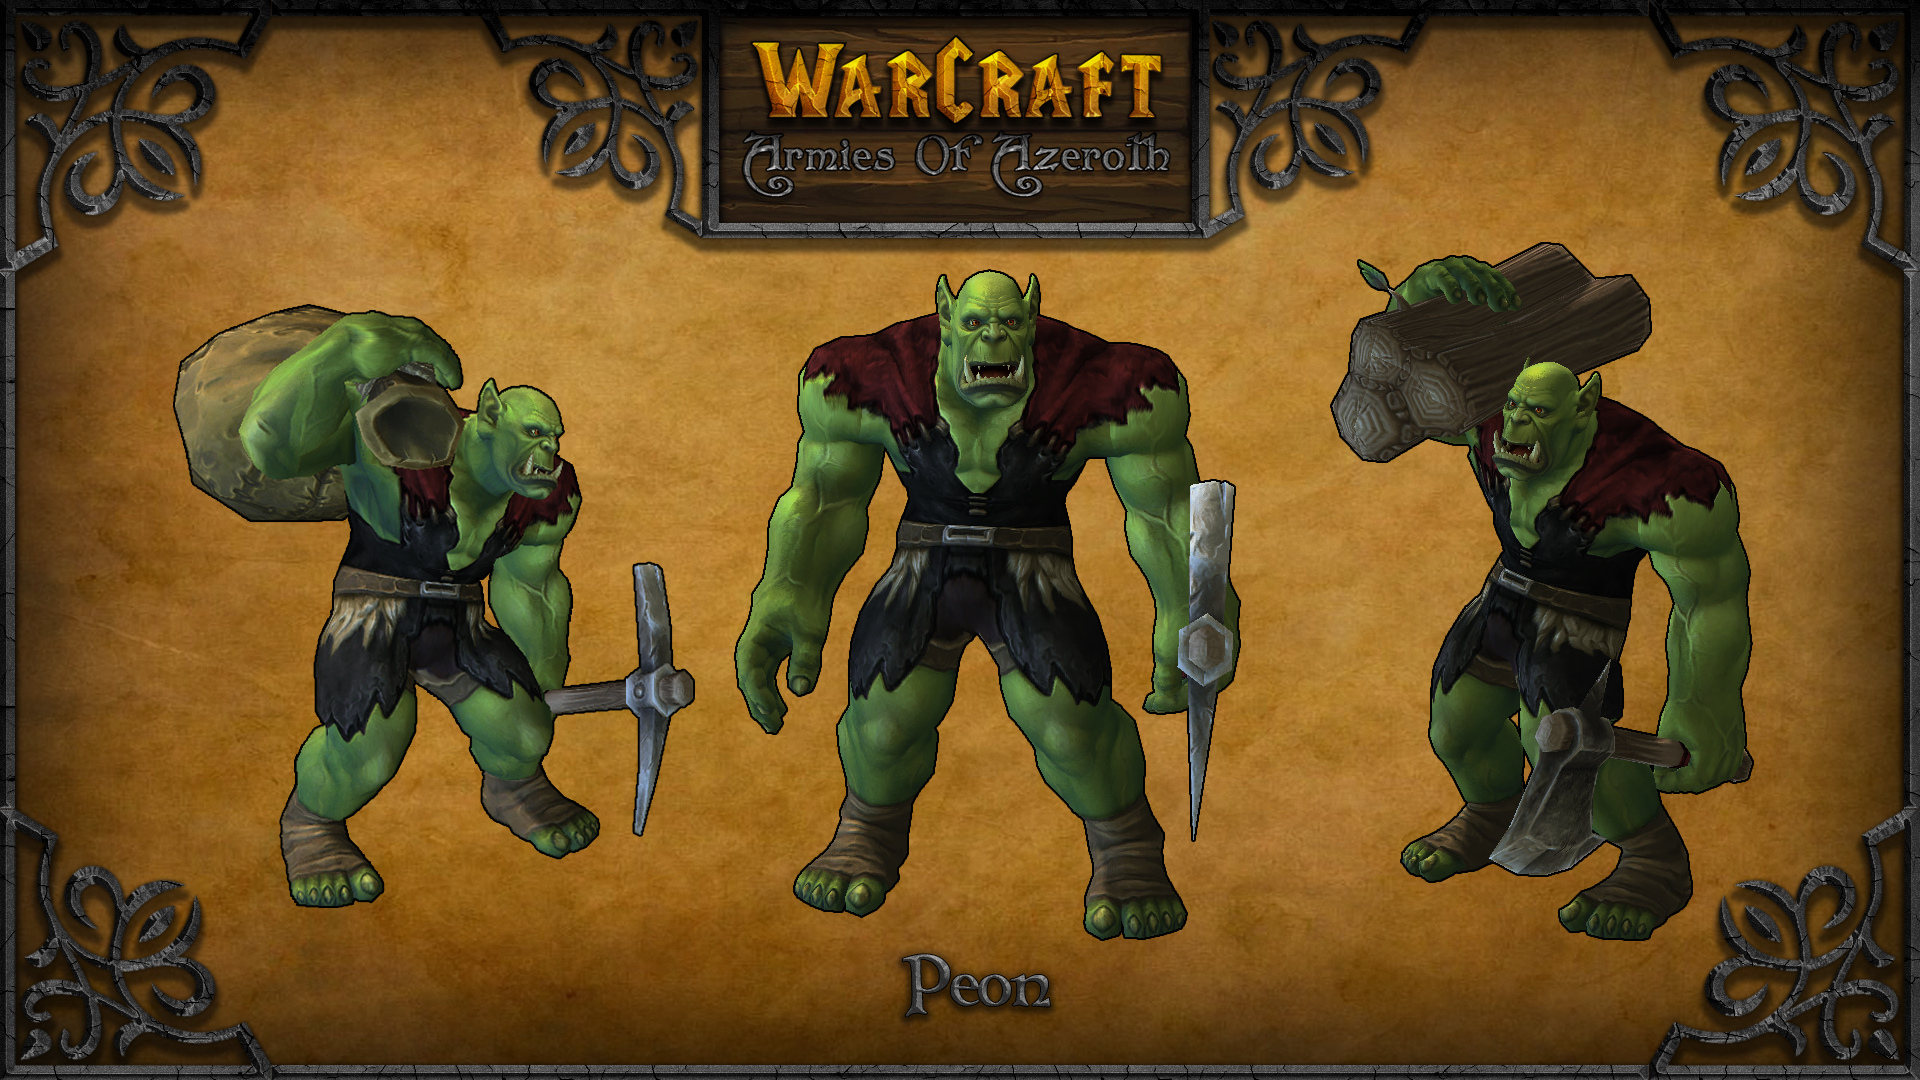 Peon Image Warcraft Armies Of Azeroth Mod For Starcraft Ii